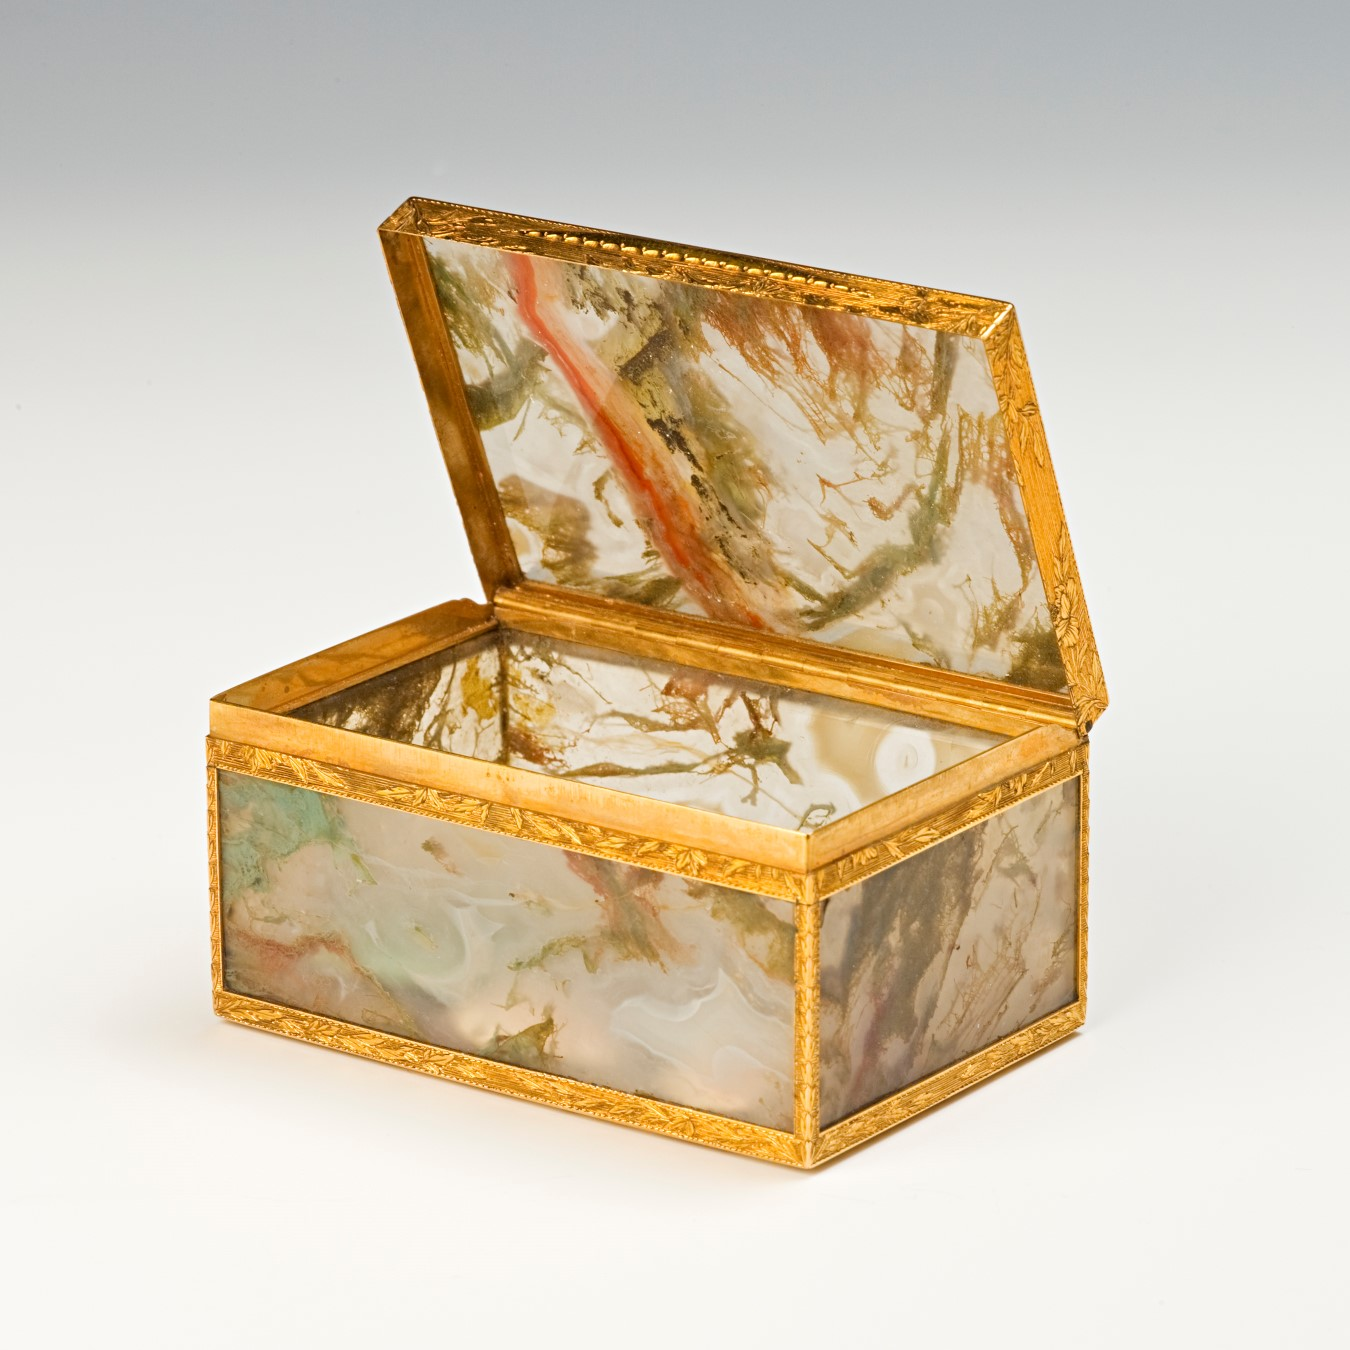 An English or German gold-mounted moss agate snuff box, mid 18th Century.